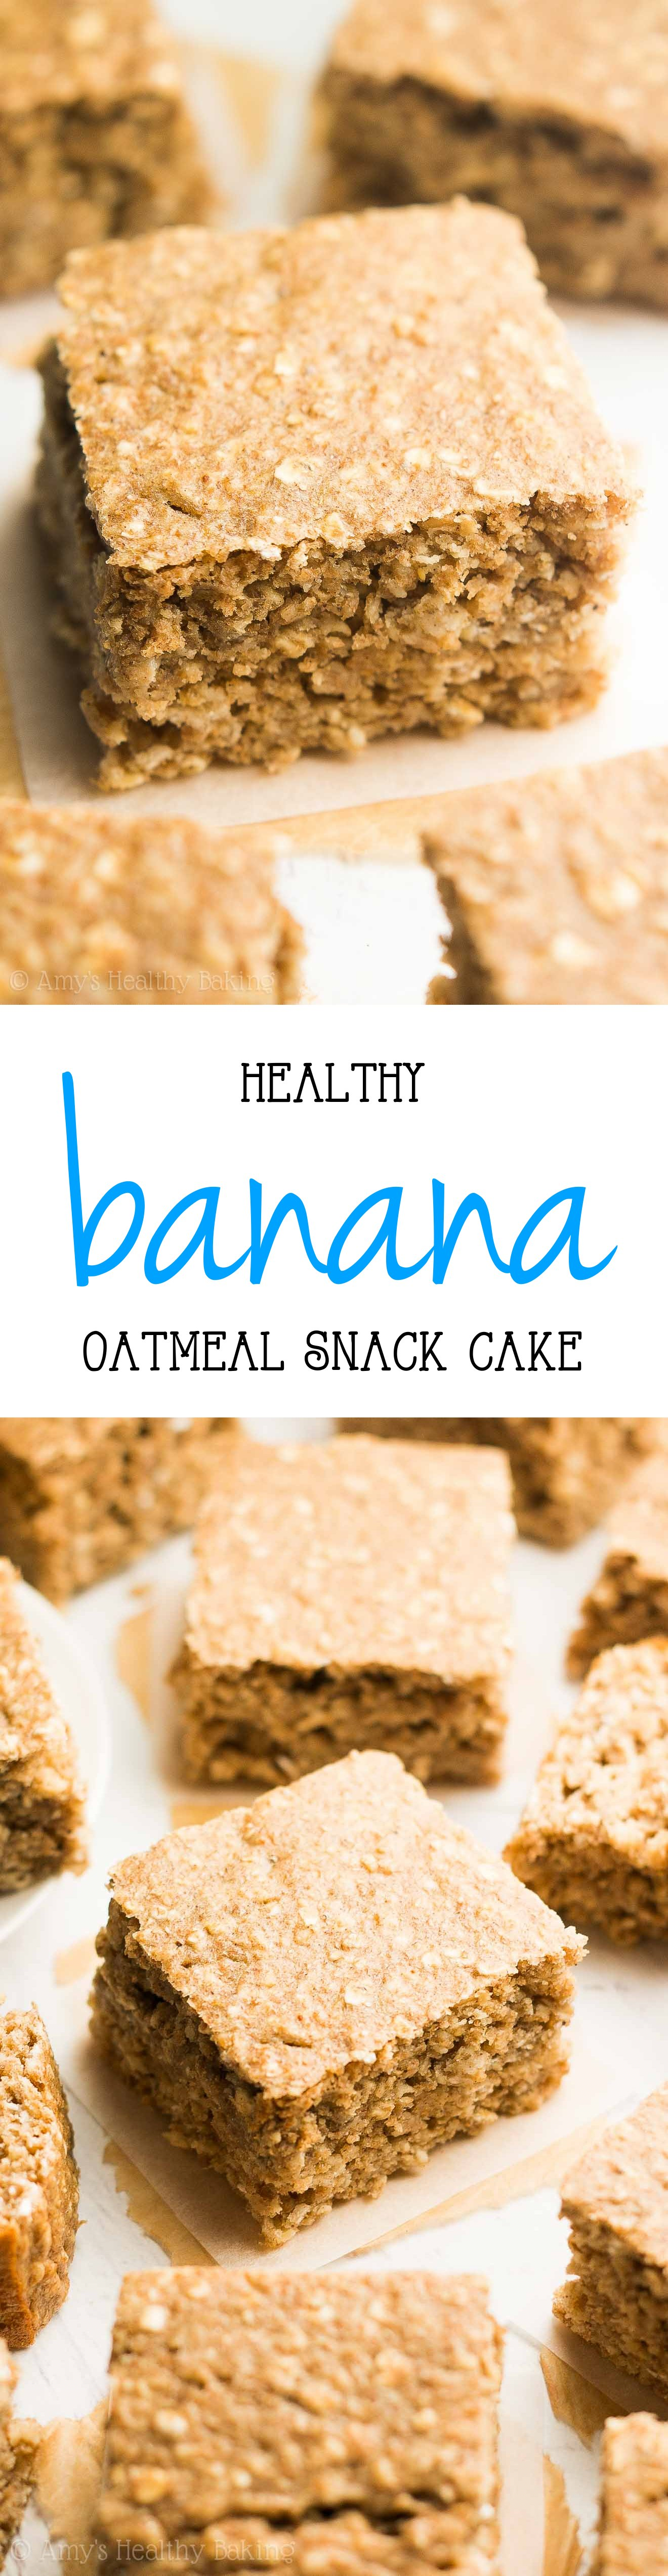 Healthy Banana Oatmeal Snack Cake Only 101 Calories Perfect For Guilt Free